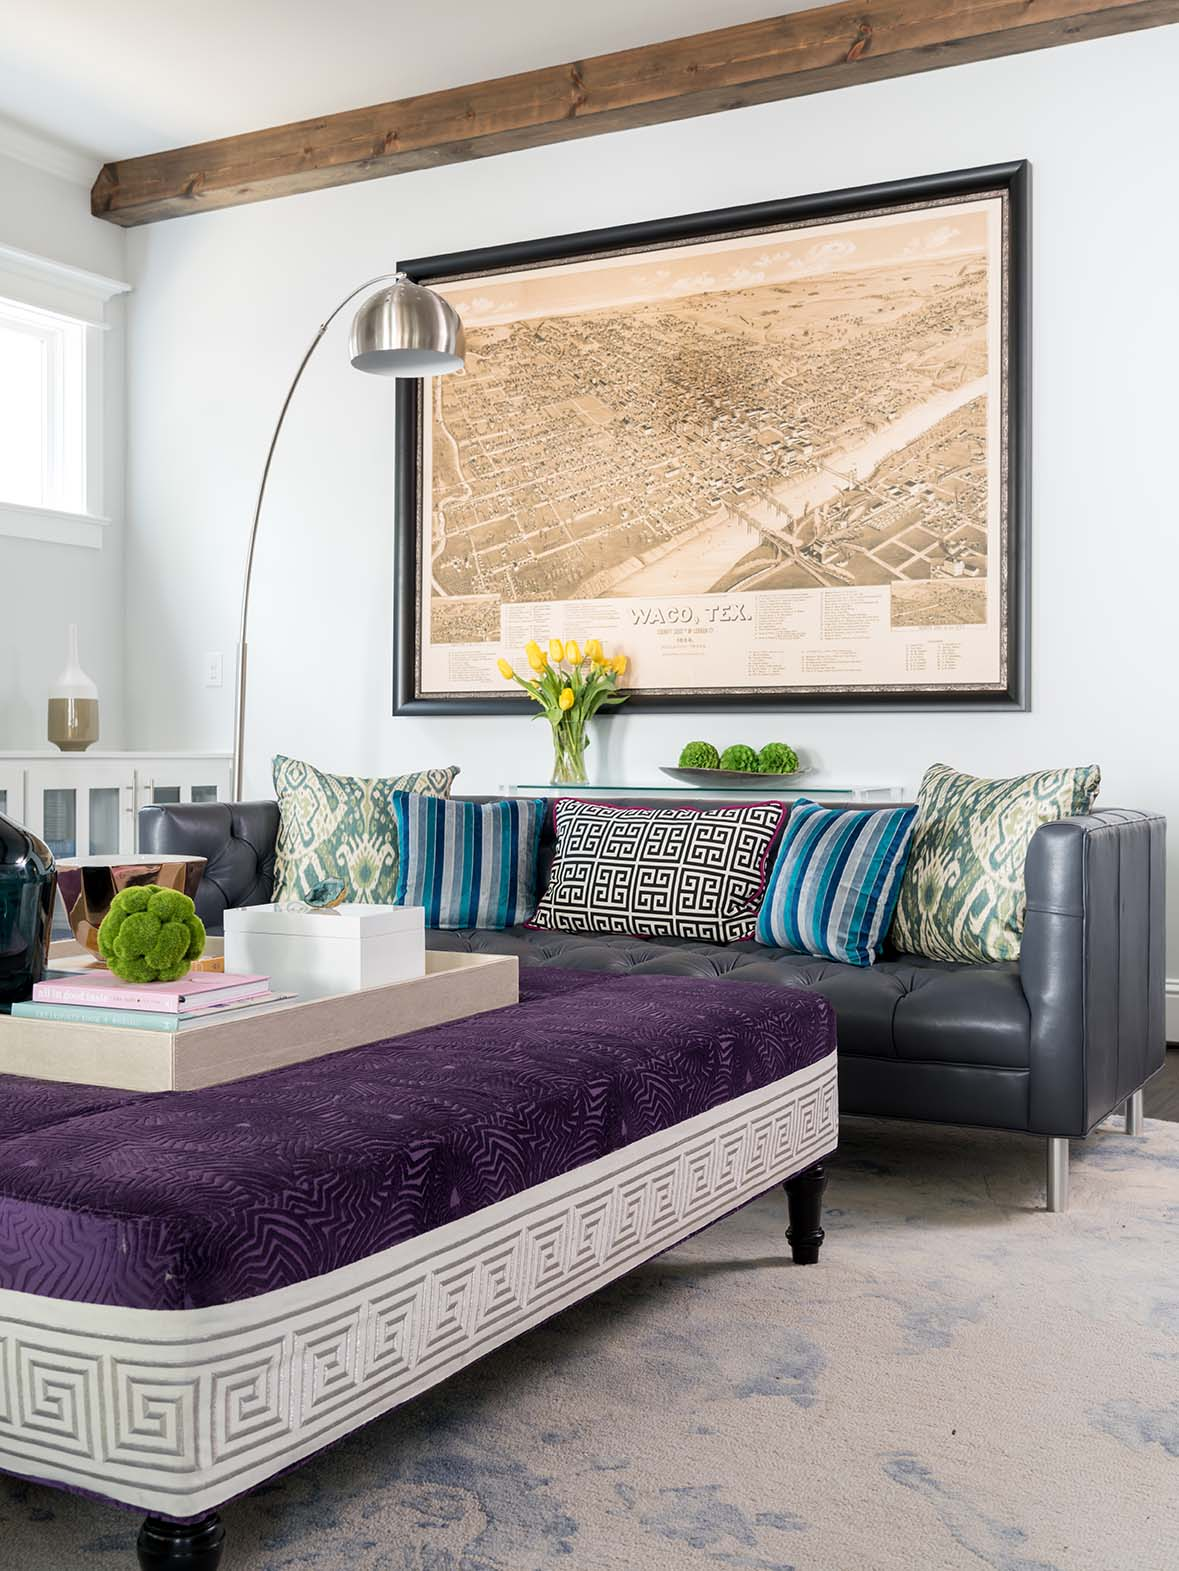 Project miller ave family room ottoman ml interiors group dallas texas michelle lynne for Texas leather interiors dallas